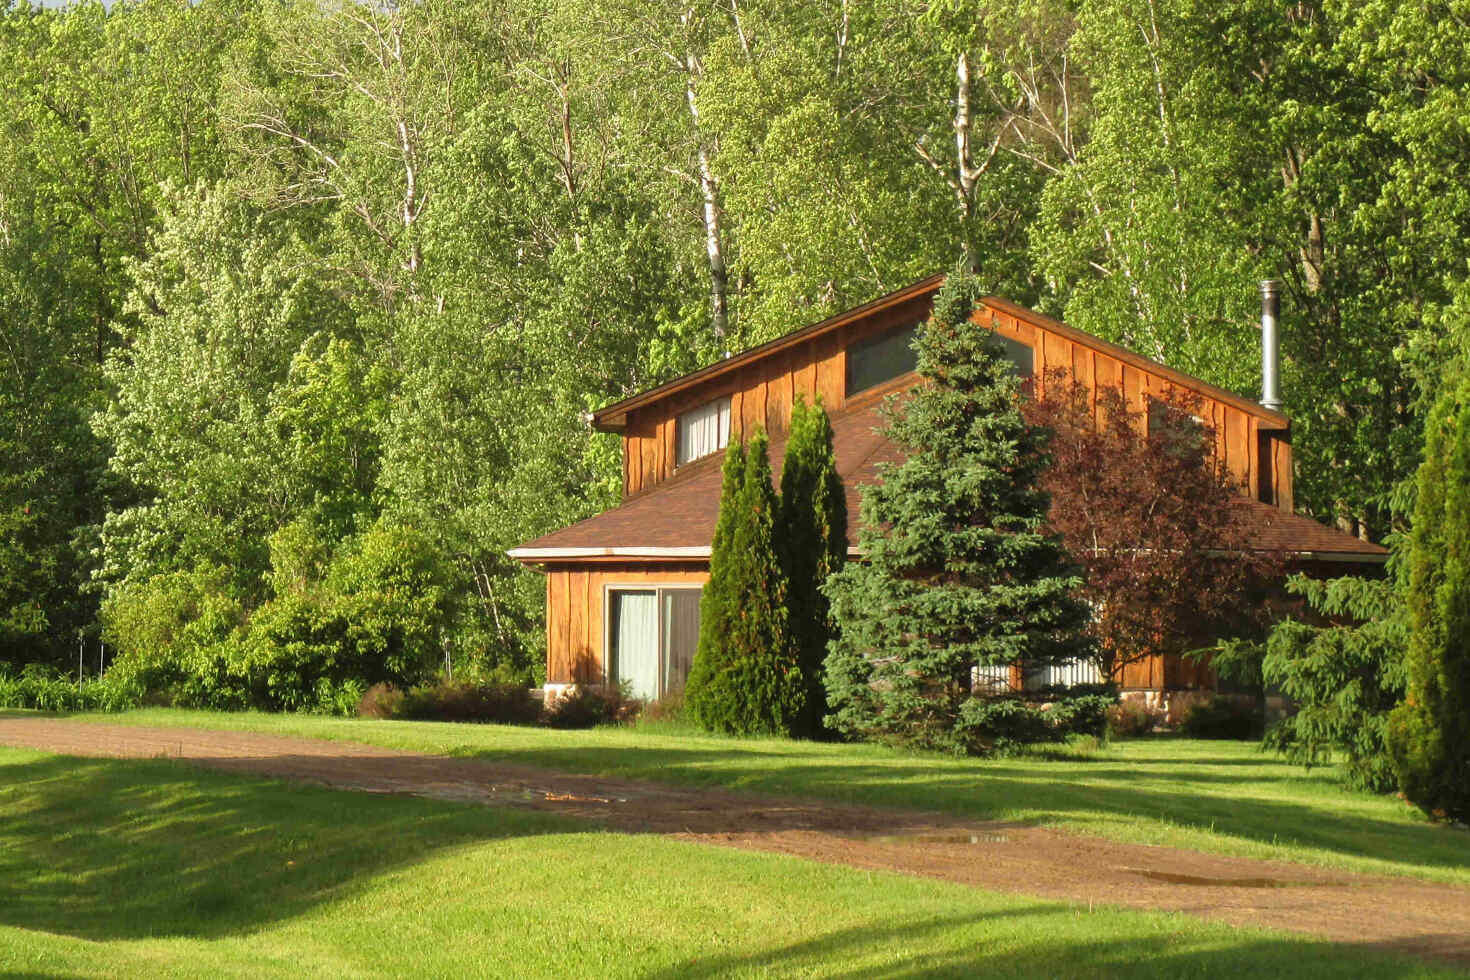 rent on o everett cabins for lodge bay vermilion in minnesota to lake